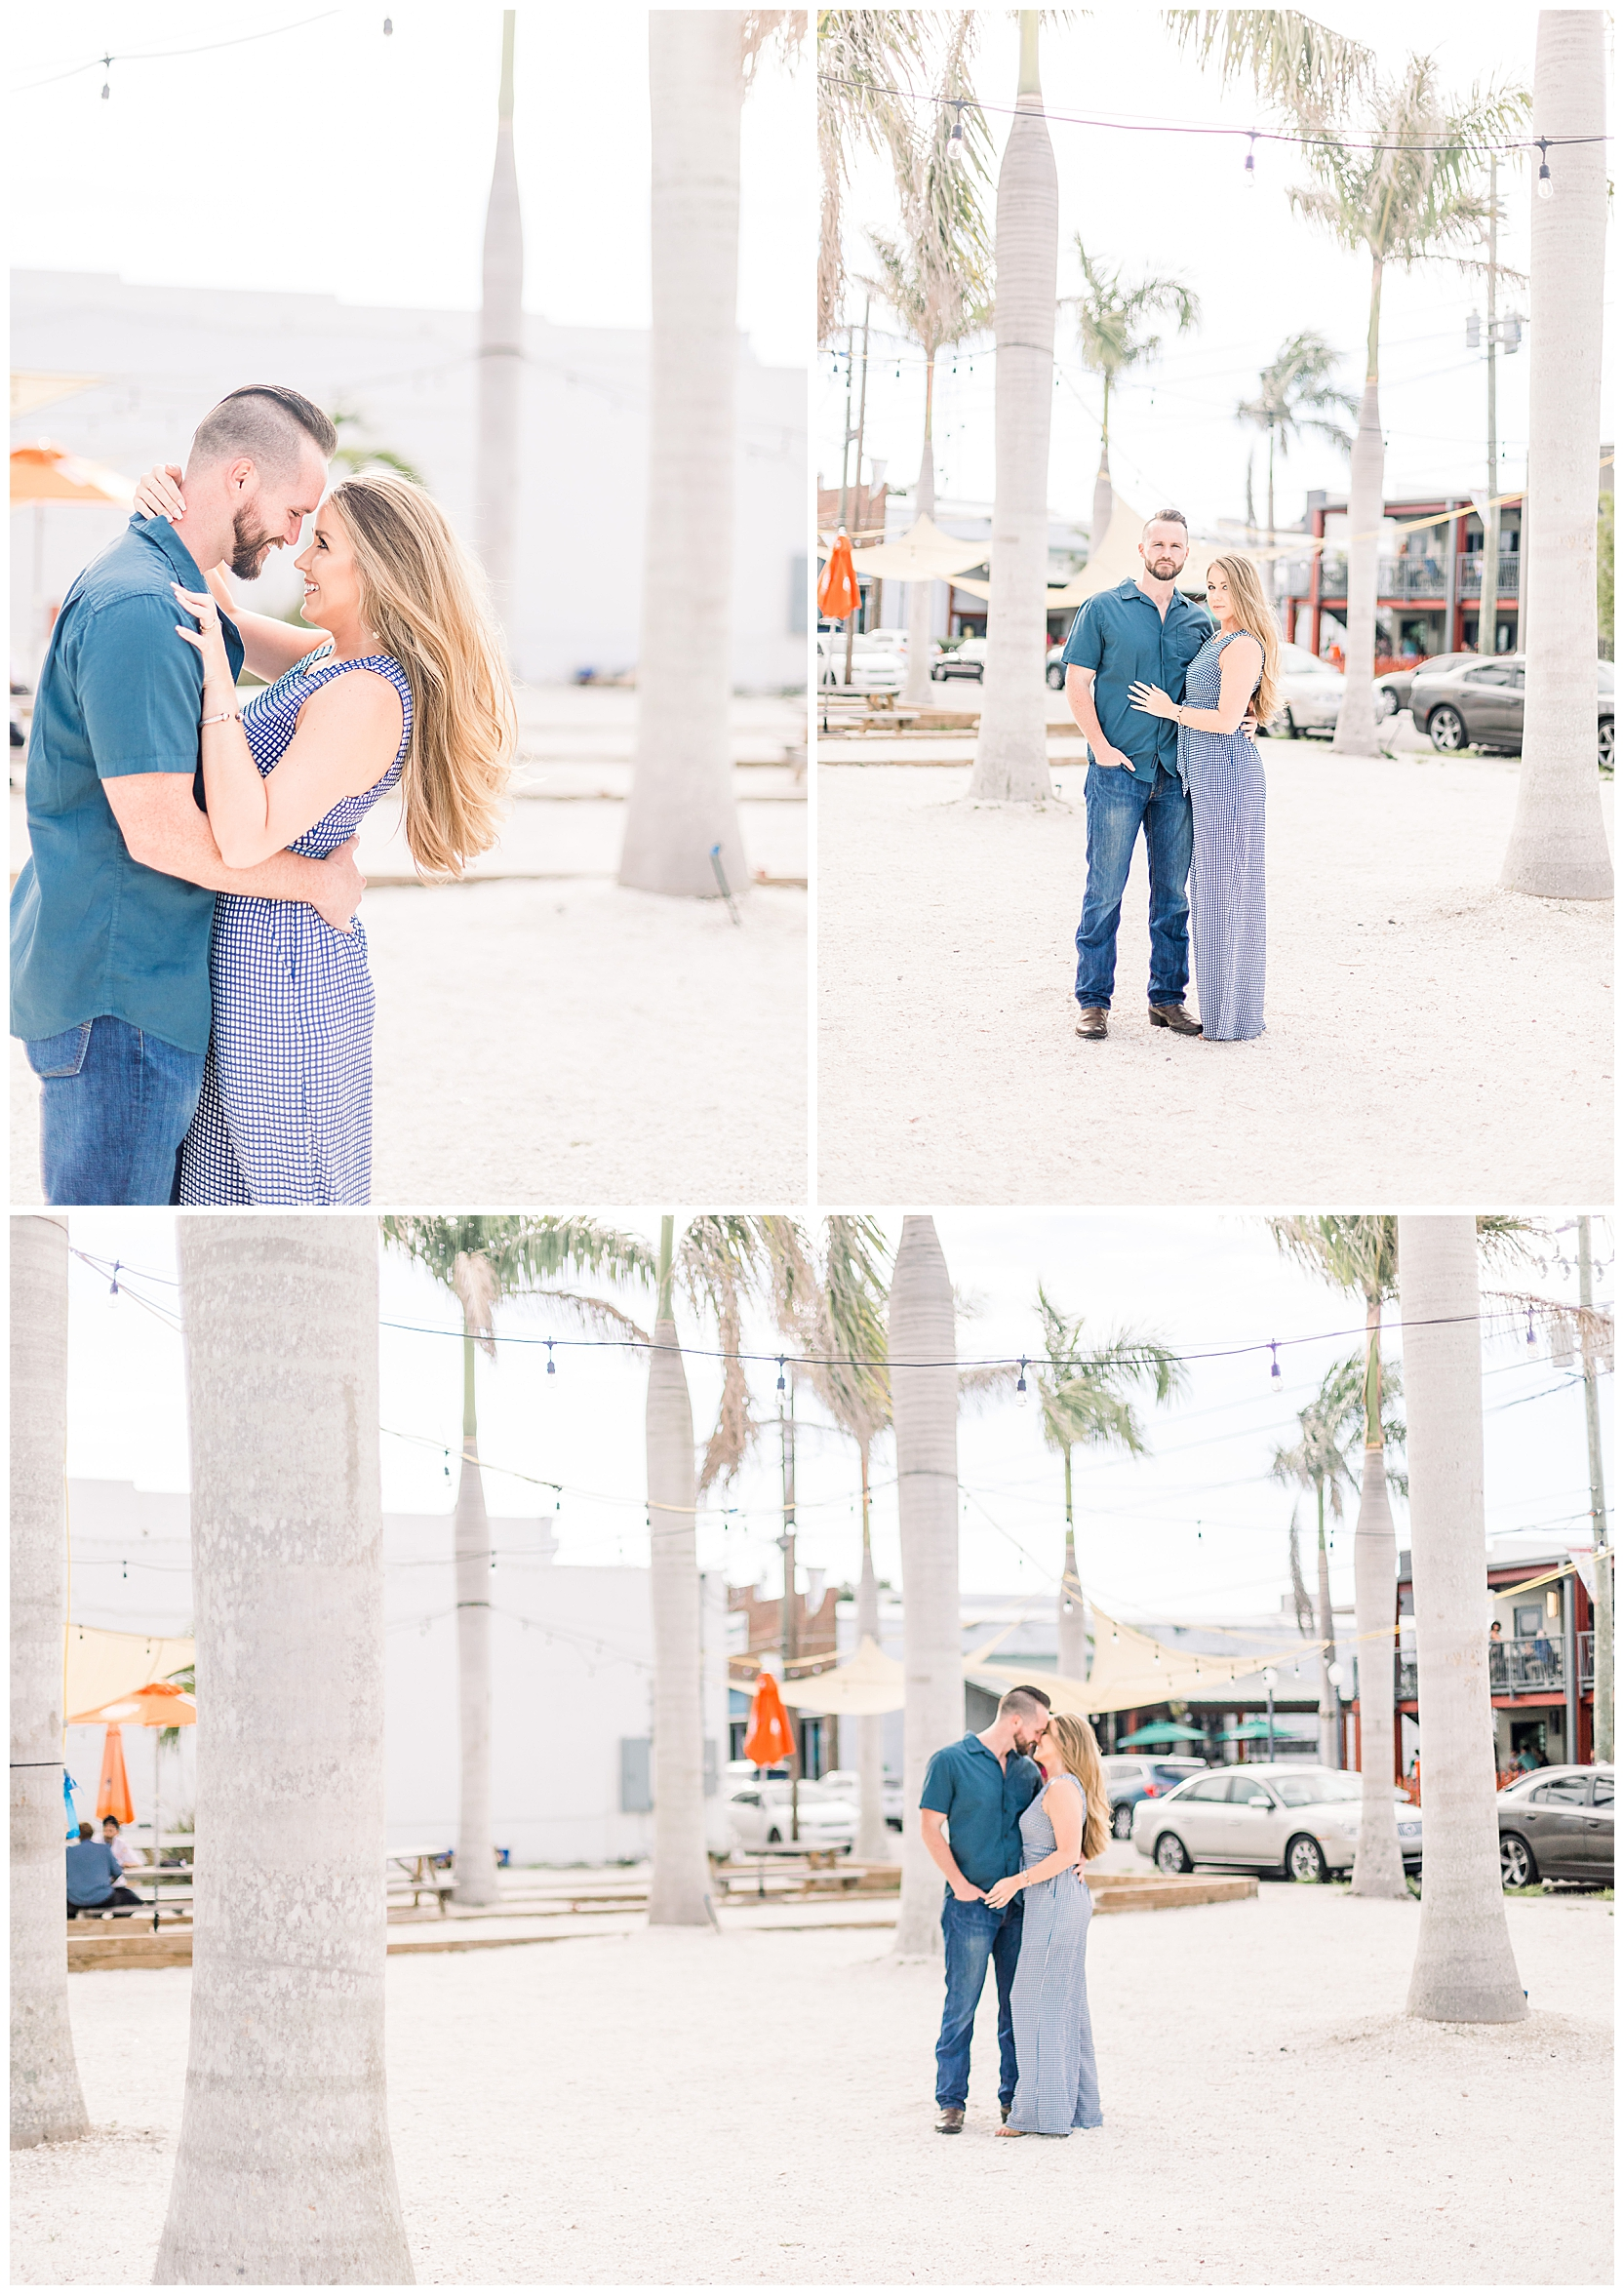 jessicafredericks_st petersburg_wedding_photographer_dtsp_anniversary_dali_north shore03.jpg